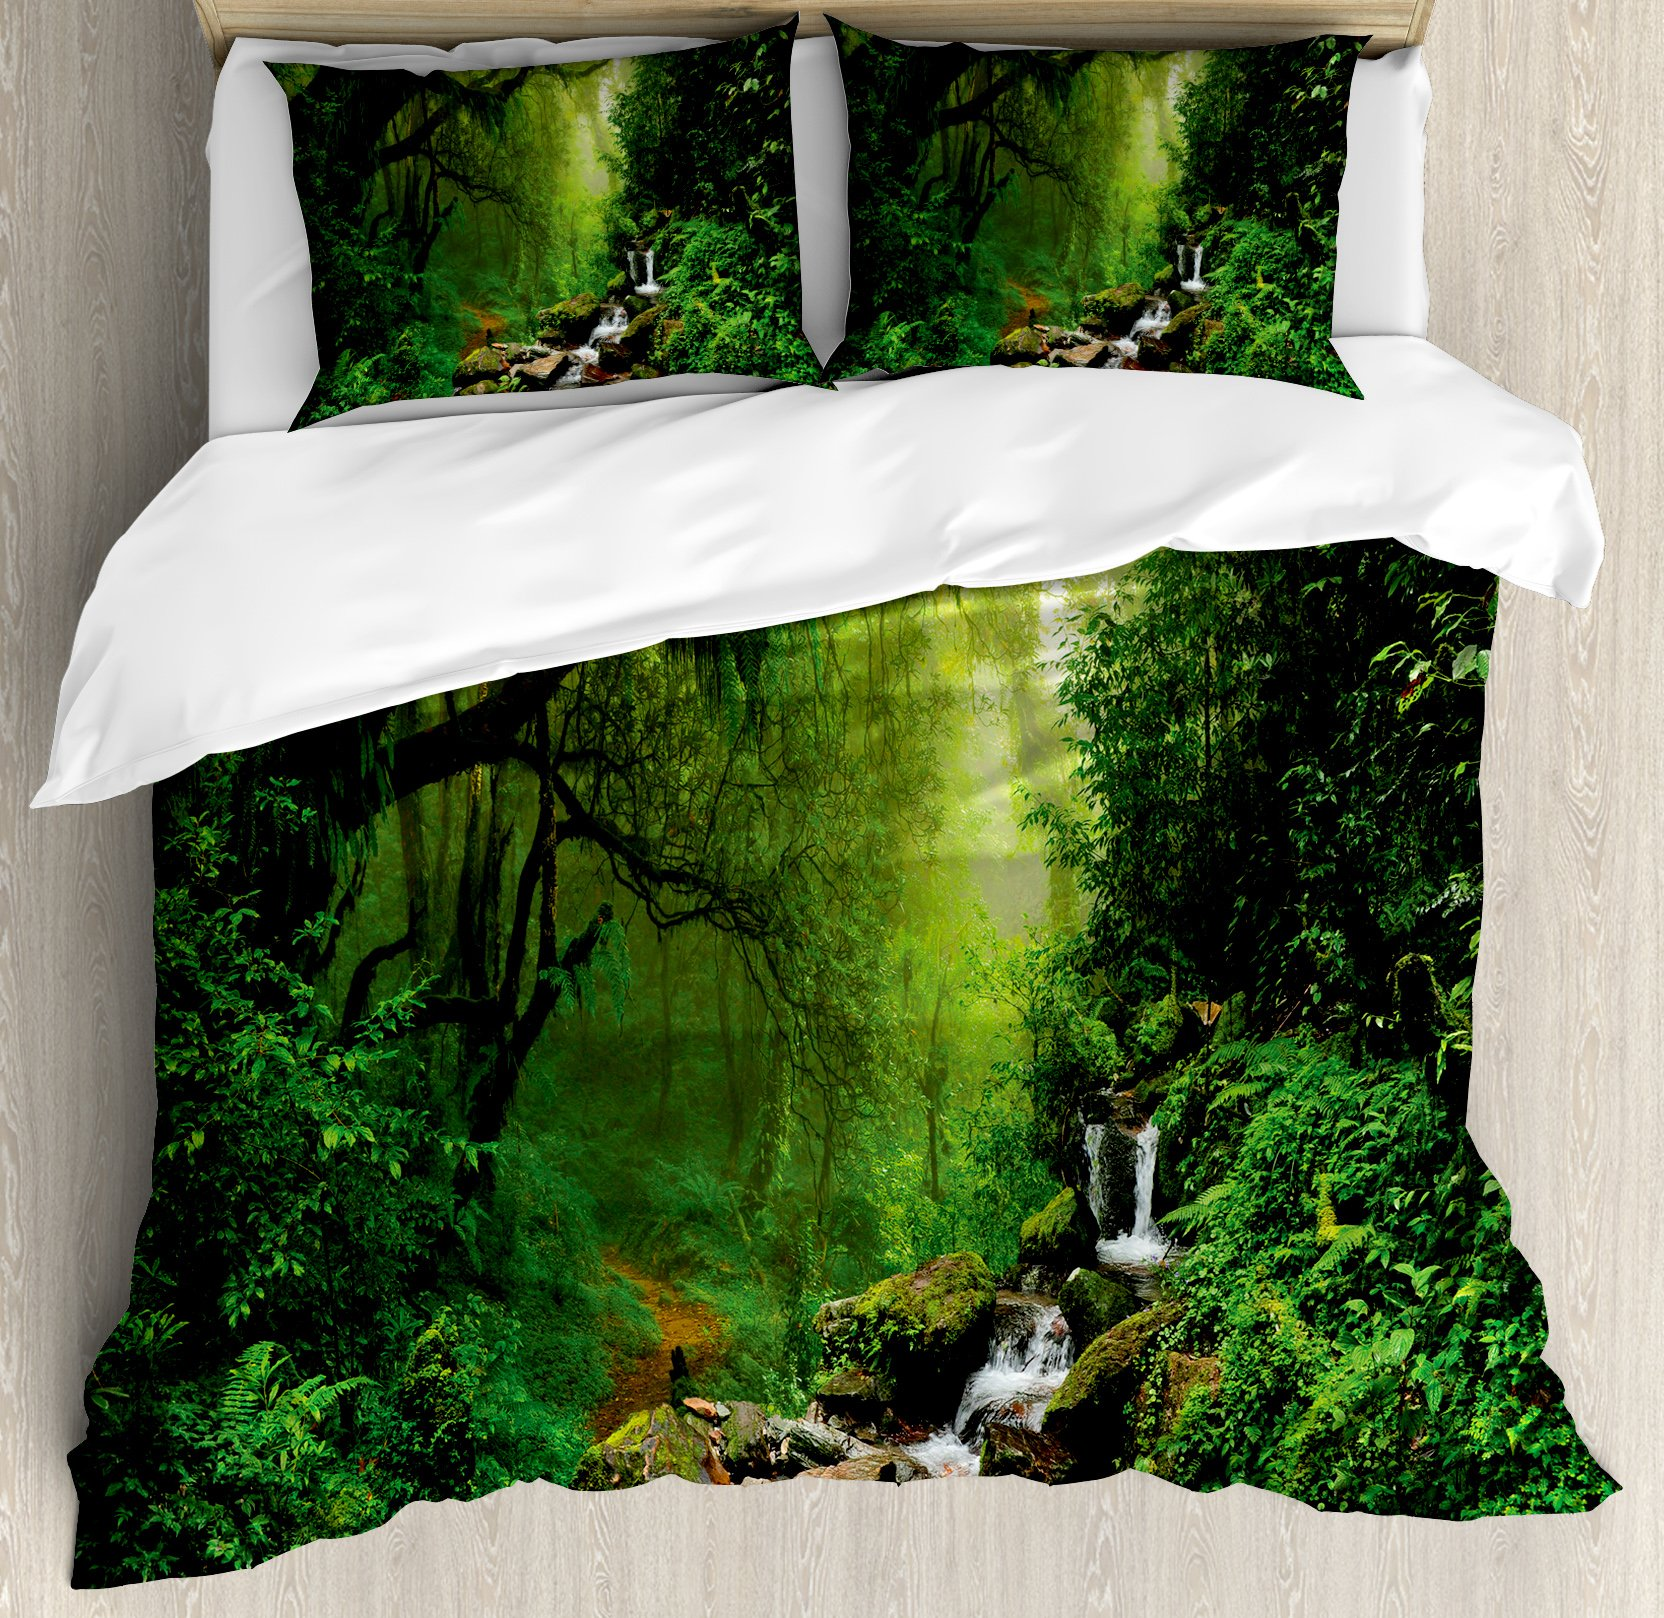 Ambesonne Nature Duvet Cover Set King Size, Into the Woods Idyllic Forest Greenland Dreamy Mystic Fresh Tropical View, Decorative 3 Piece Bedding Set with 2 Pillow Shams, Emerald Hunter Green